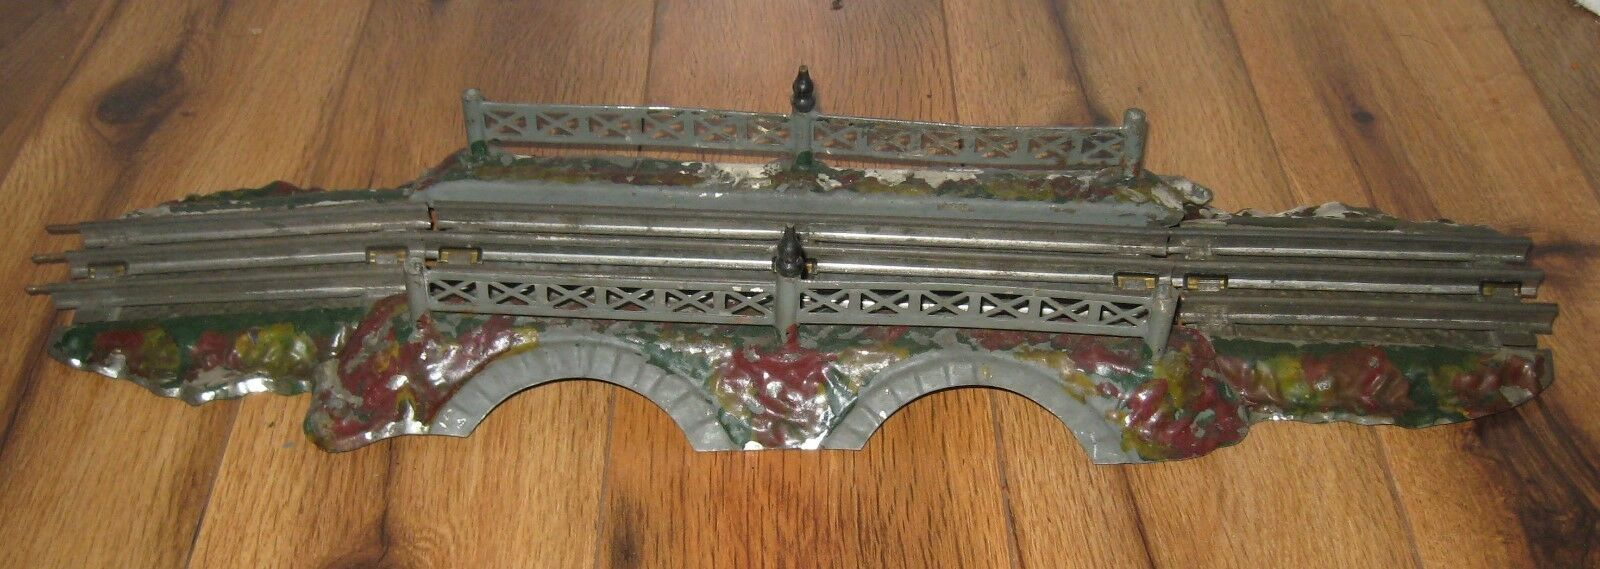 Antique Prewar Ives Tin Rustic O Gauge Bridge Rare Vintage Train Double Arch